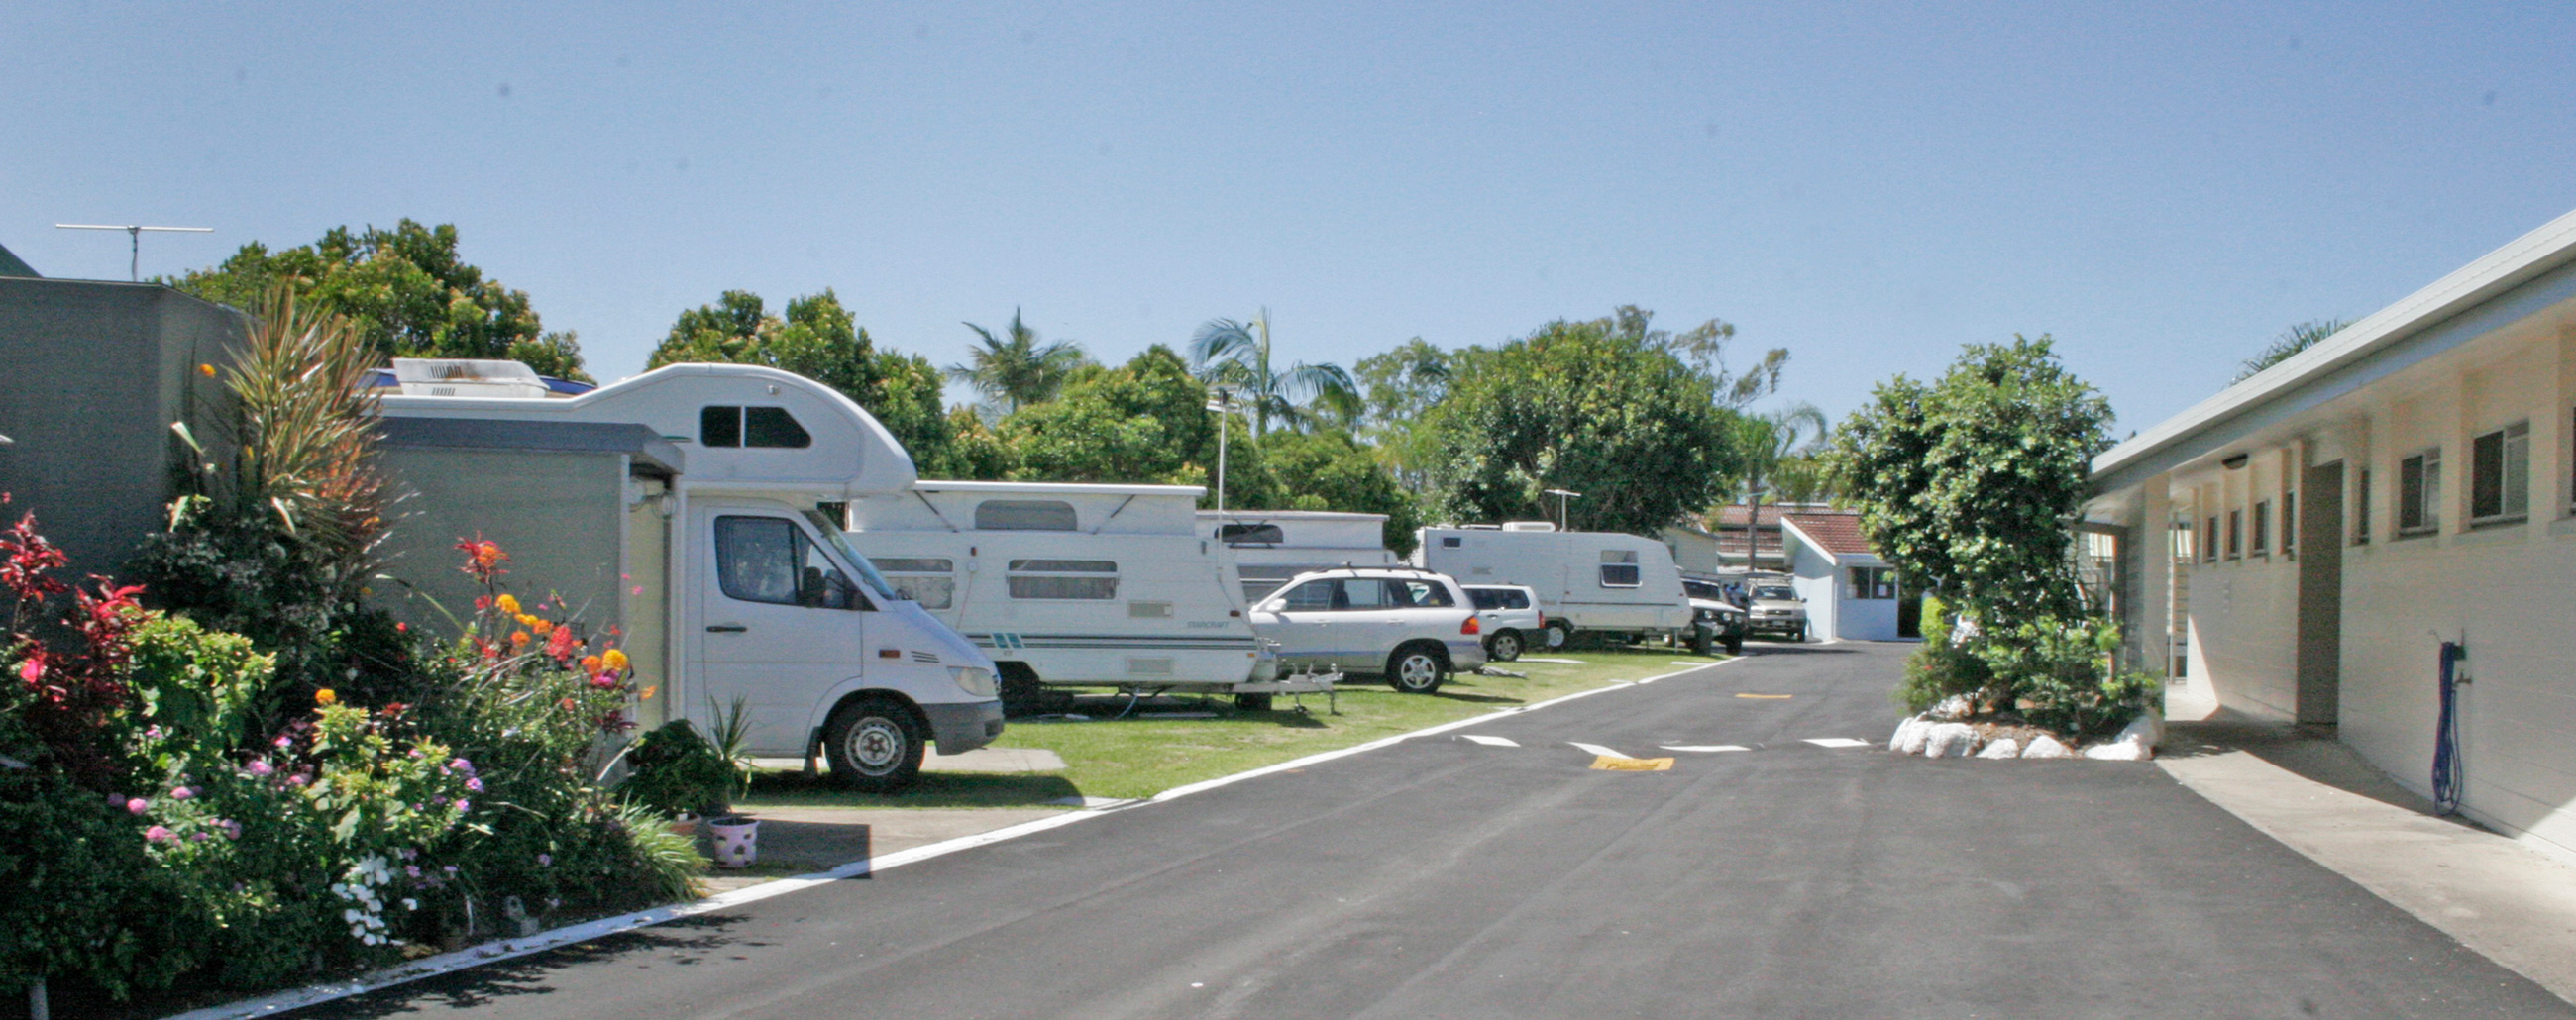 Caravan Long Stay Deals